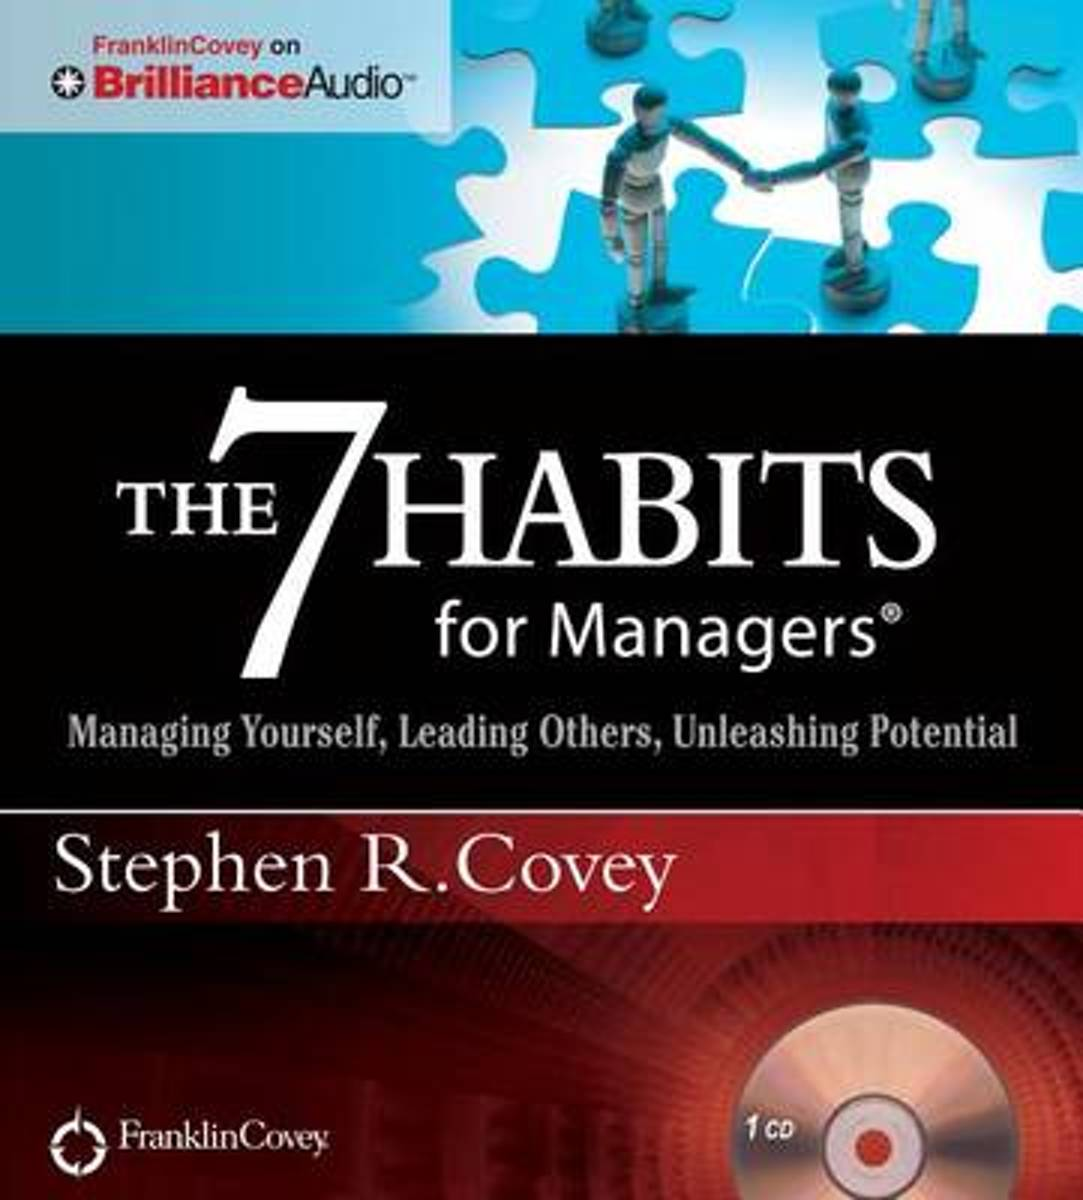 The 7 Habits for Managers